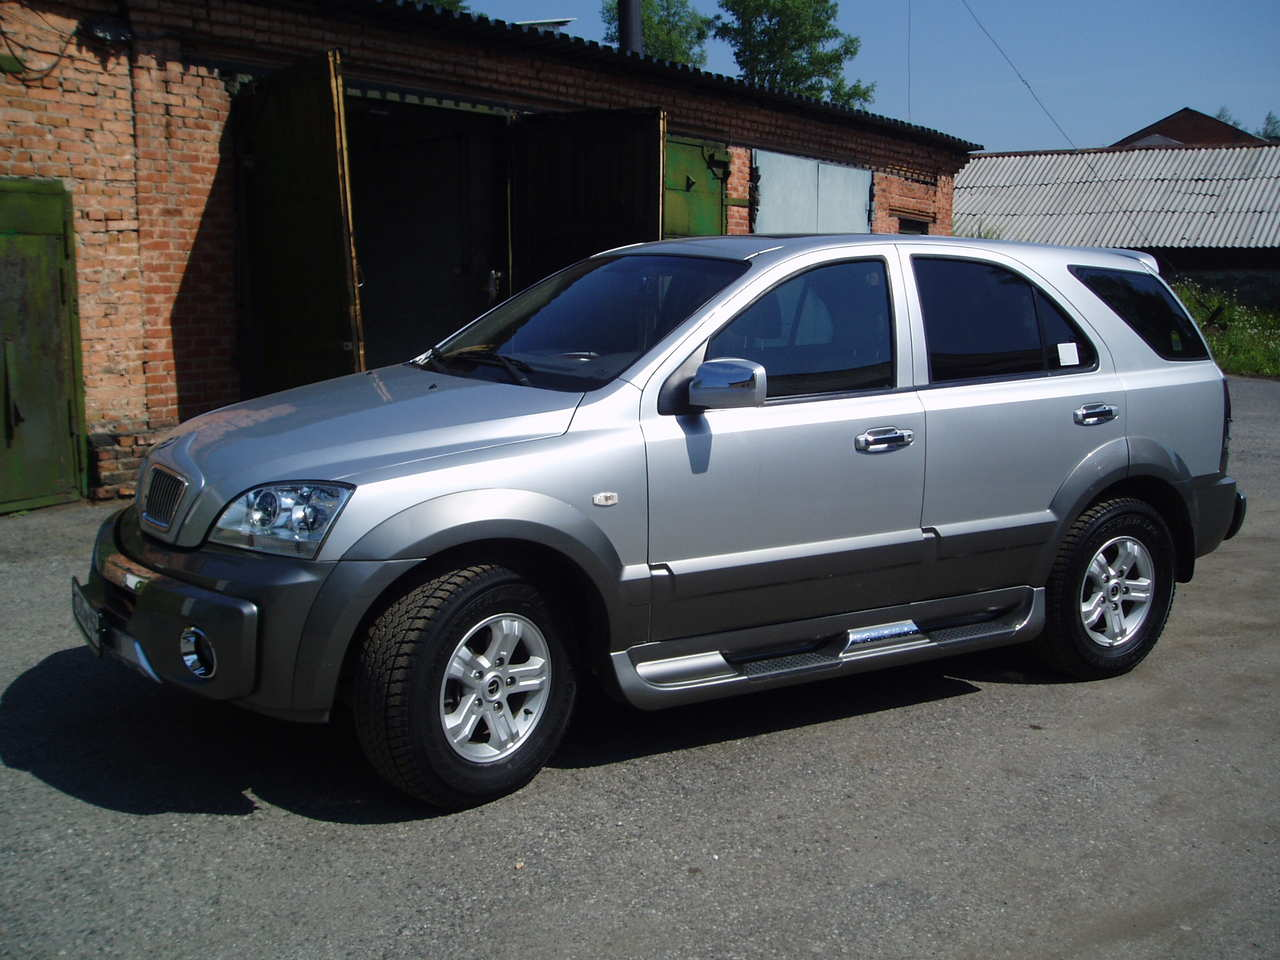 2004 kia sorento pictures 2500cc diesel automatic for sale. Black Bedroom Furniture Sets. Home Design Ideas